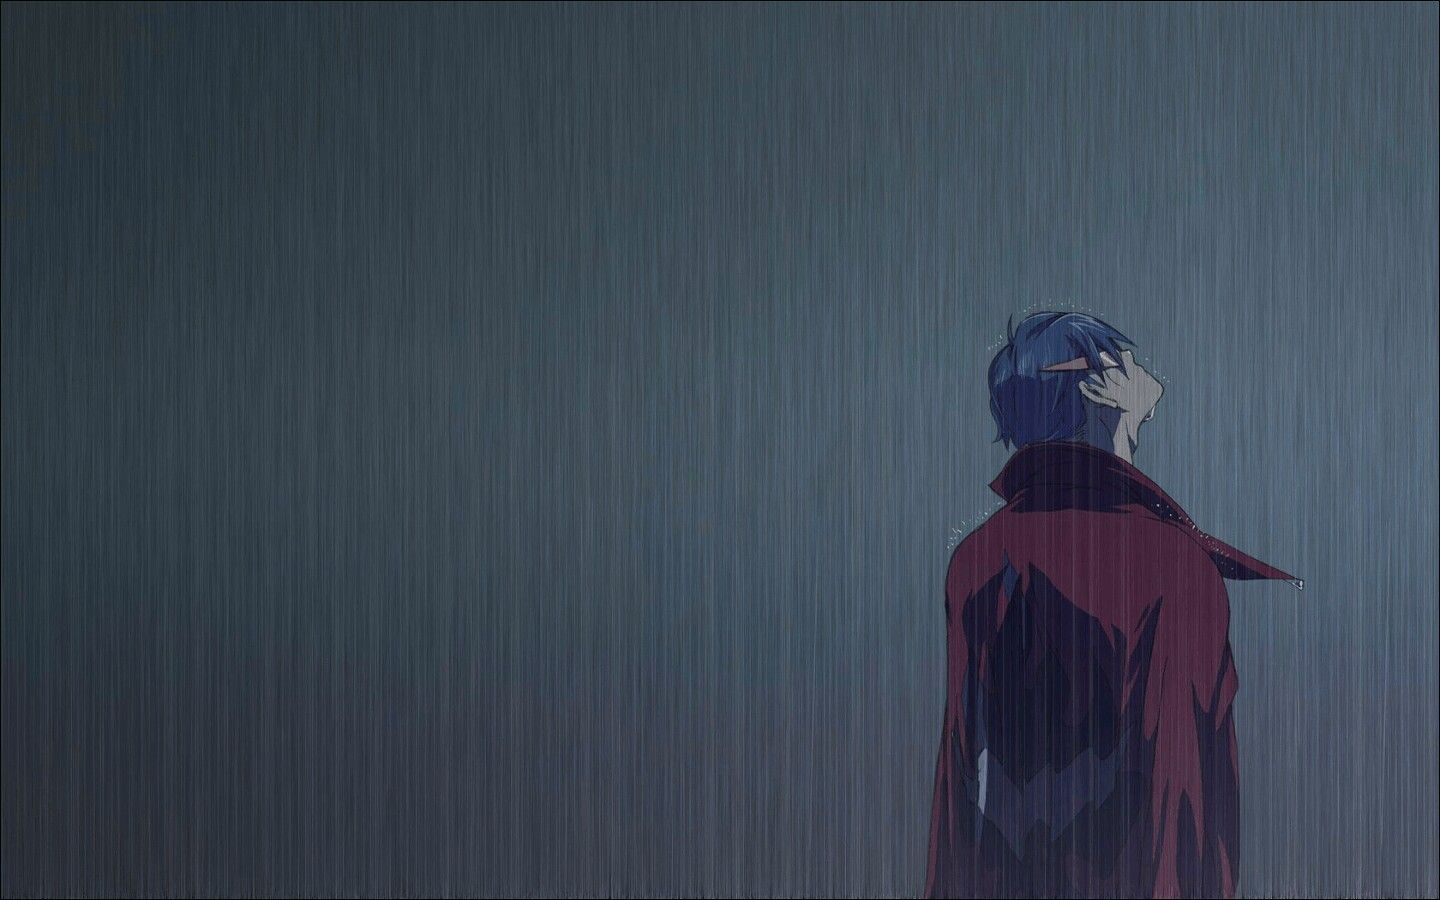 Pin by Cassandra Spencer on Animated Anime boy crying